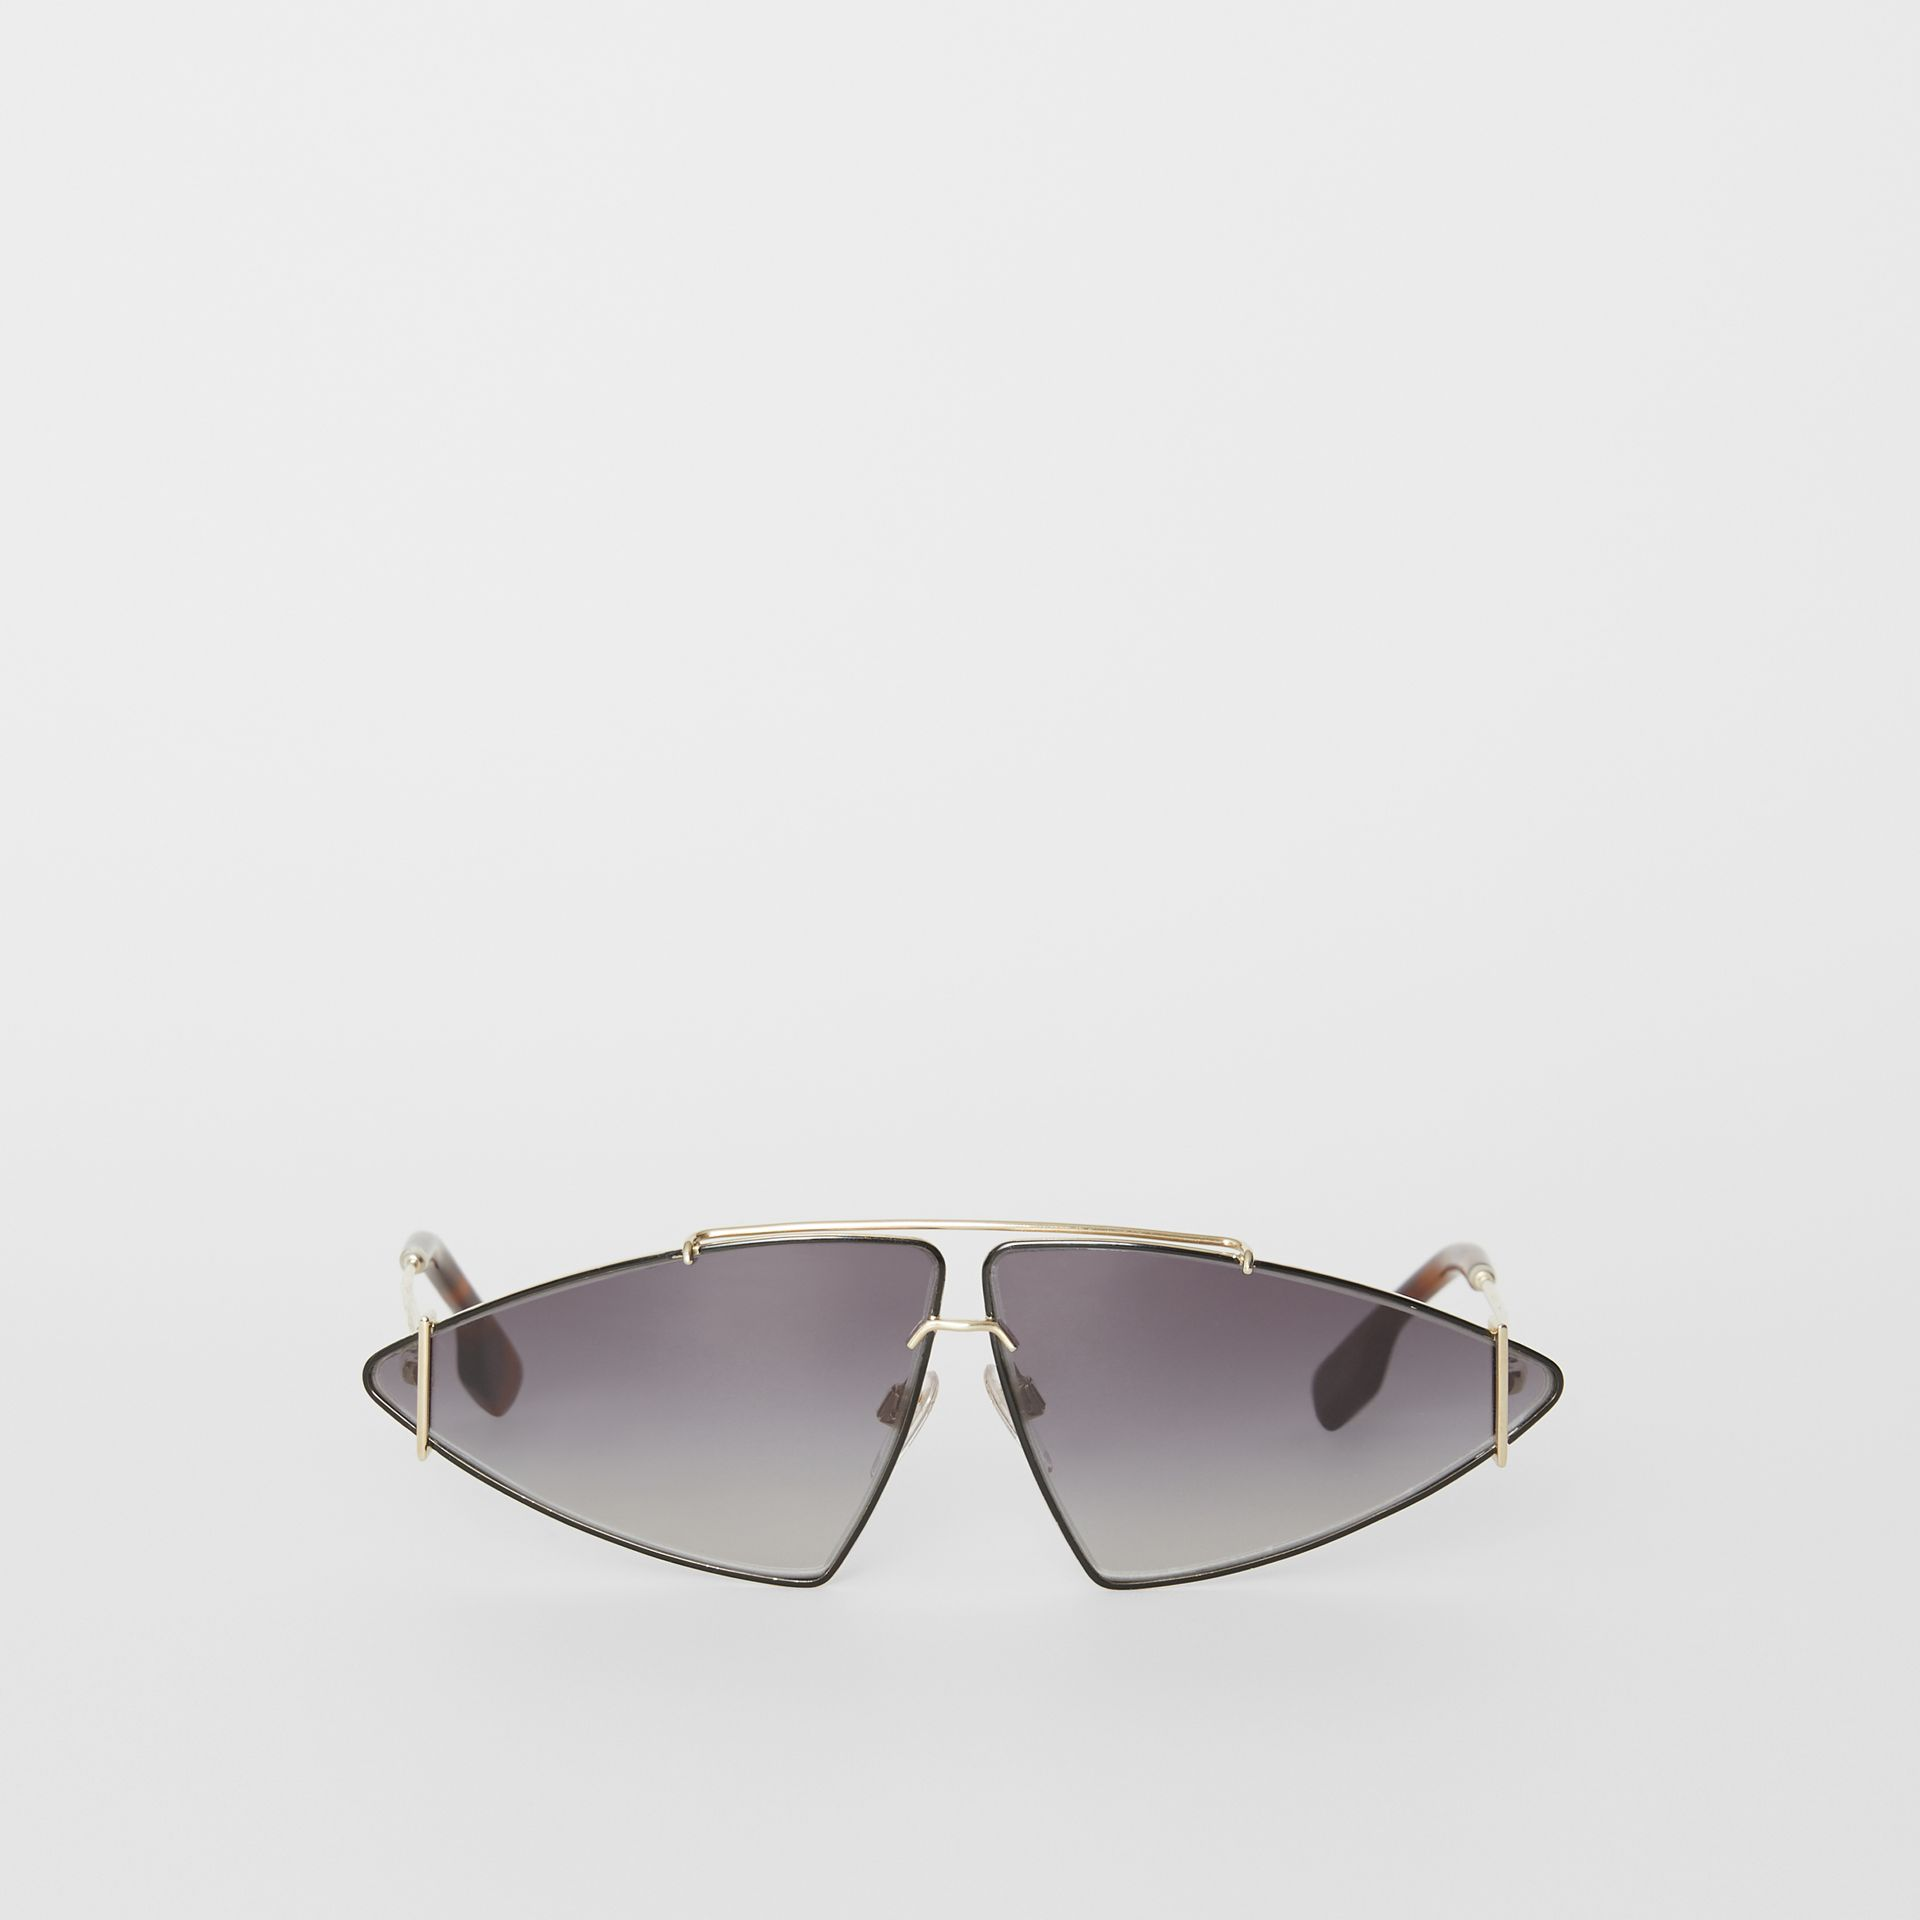 Gold-plated Triangular Frame Sunglasses in Black - Women | Burberry United States - gallery image 0